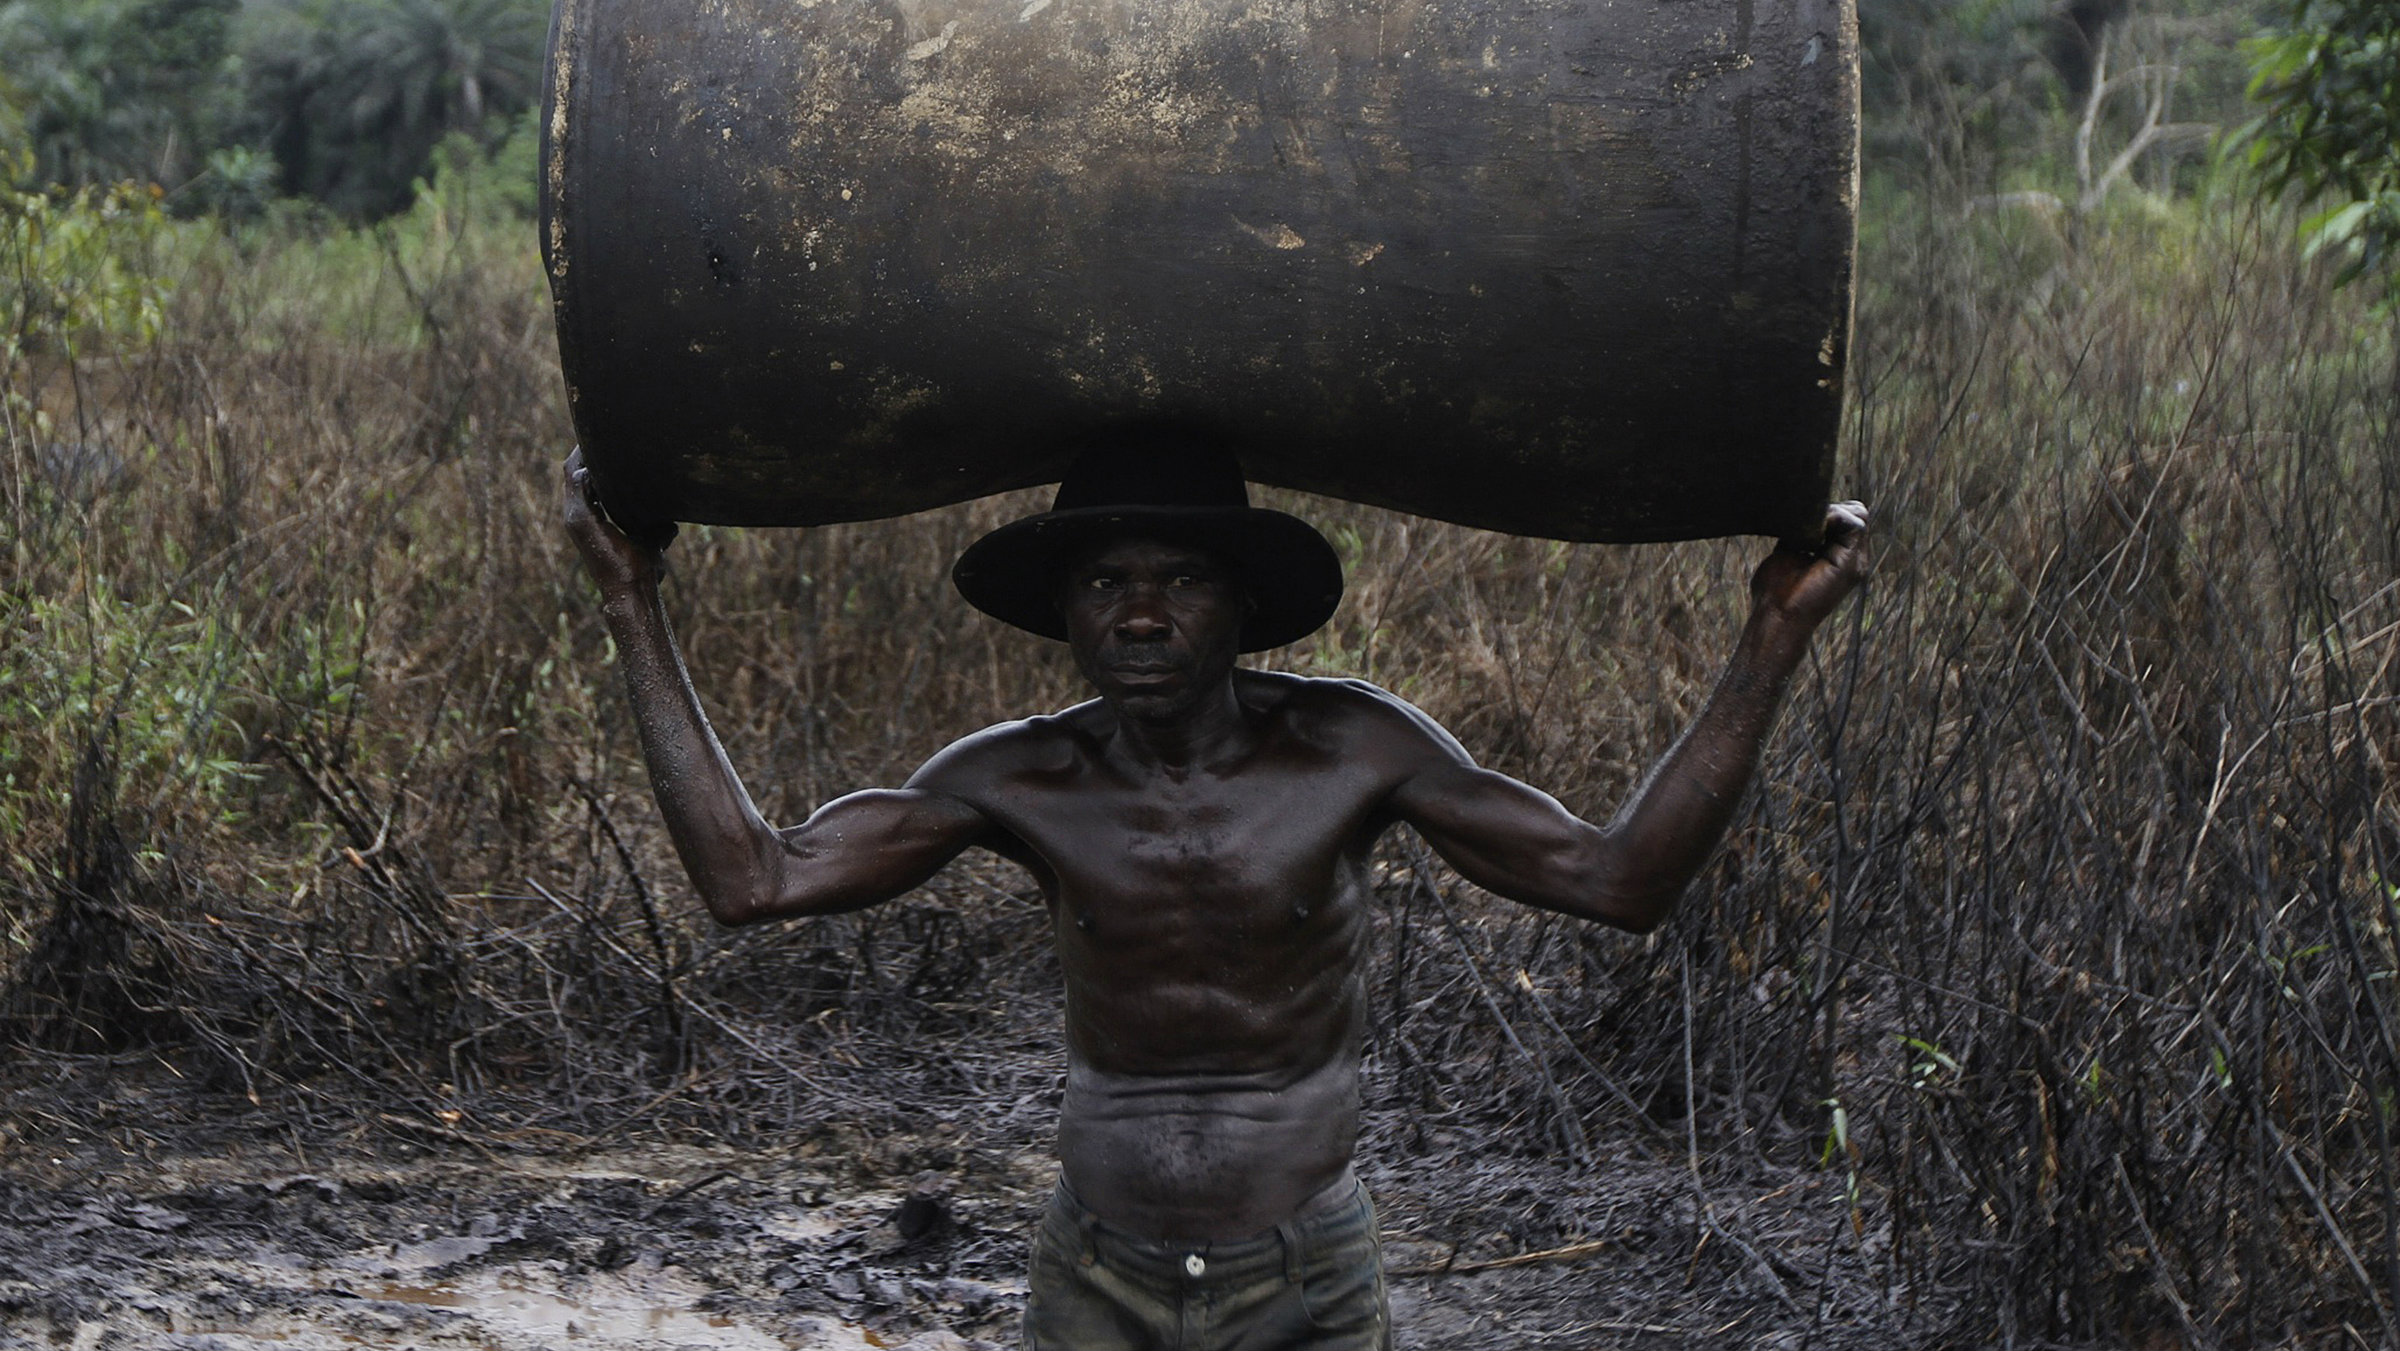 In Bayelsa state, Nigeria, a man carries an empty oil drum to be filled for sale later.